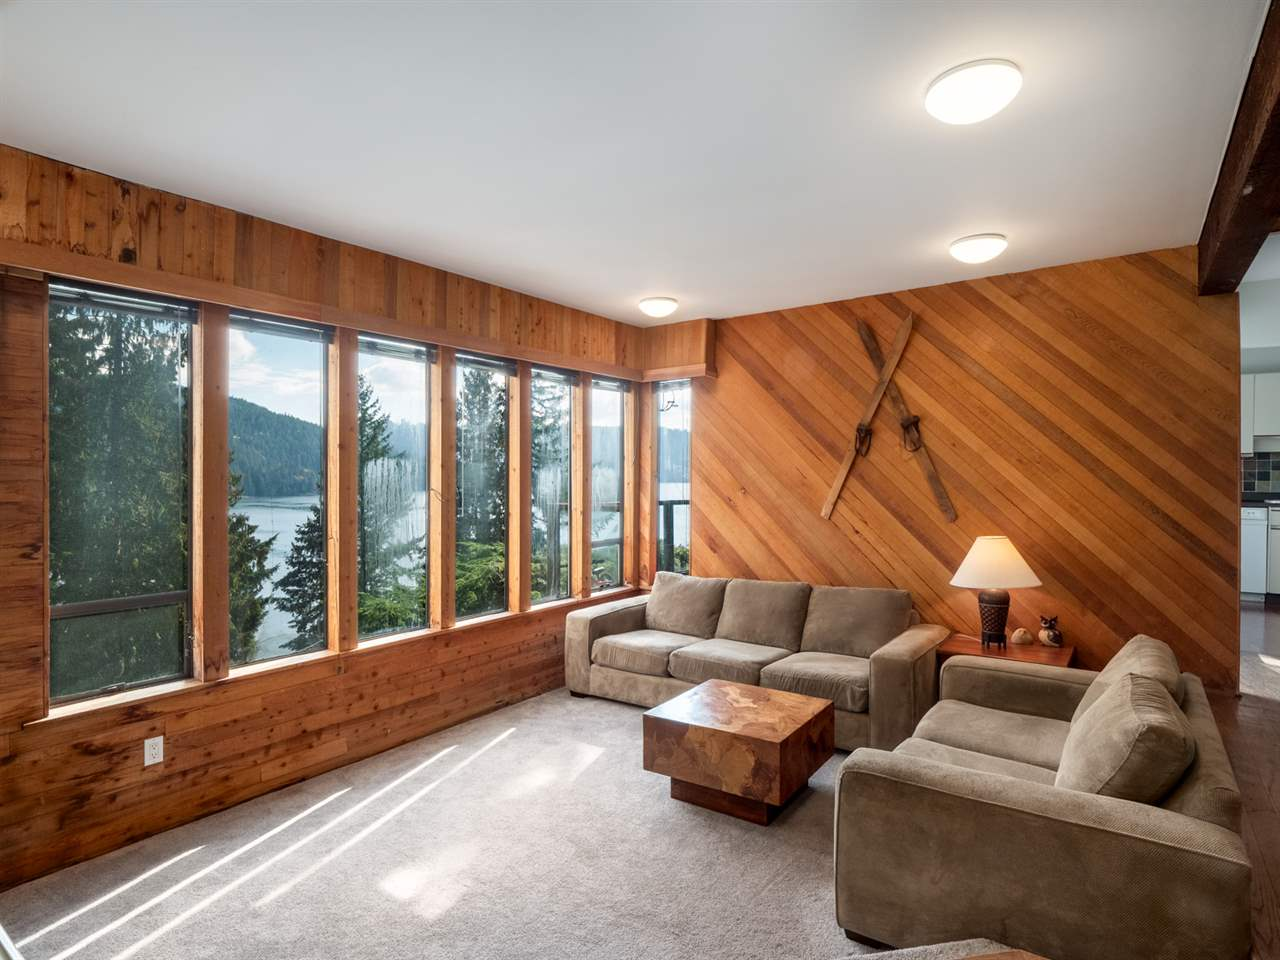 Wow! Here is a fantastic opportunity to secure a 4 bedroom home located in the quaint area of Deep Cove with amazing water views of Indian Arm. Located off a no-through road with nothing but peace and quiet as your neighbours. This home has 3 levels each with its own expansive deck with stunning views off to the water. The main floor features a large dining area, a sunken living room with a wood burning fireplace, a cute kitchen with access to an east facing deck for taking in the serene water views. Up a level you will find 3 large bedrooms, a play area and a recently updated bathroom. On the top floor you will find another bedroom,  large storage room, and a home office. Minutes to the Village and only steps to the water, parks and schools.